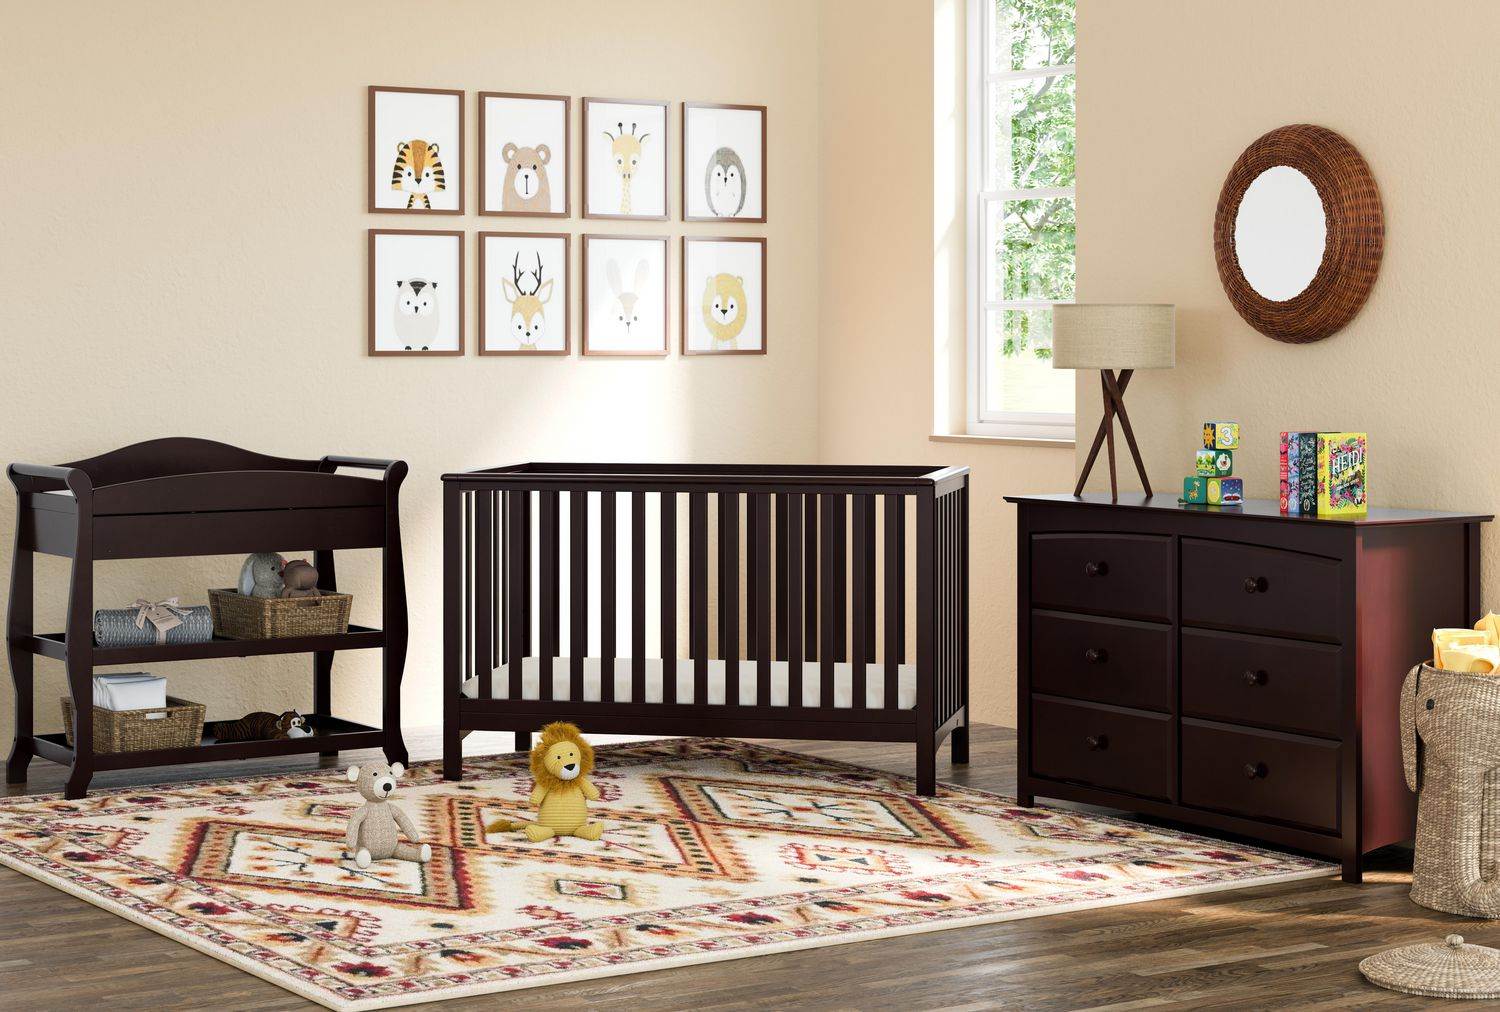 details in lines elegant cribs nursery natural frame relax sturdy crib distressed macy classic comfort and best one part bedroom convertible finish accents arched strong rustic baby featuring style